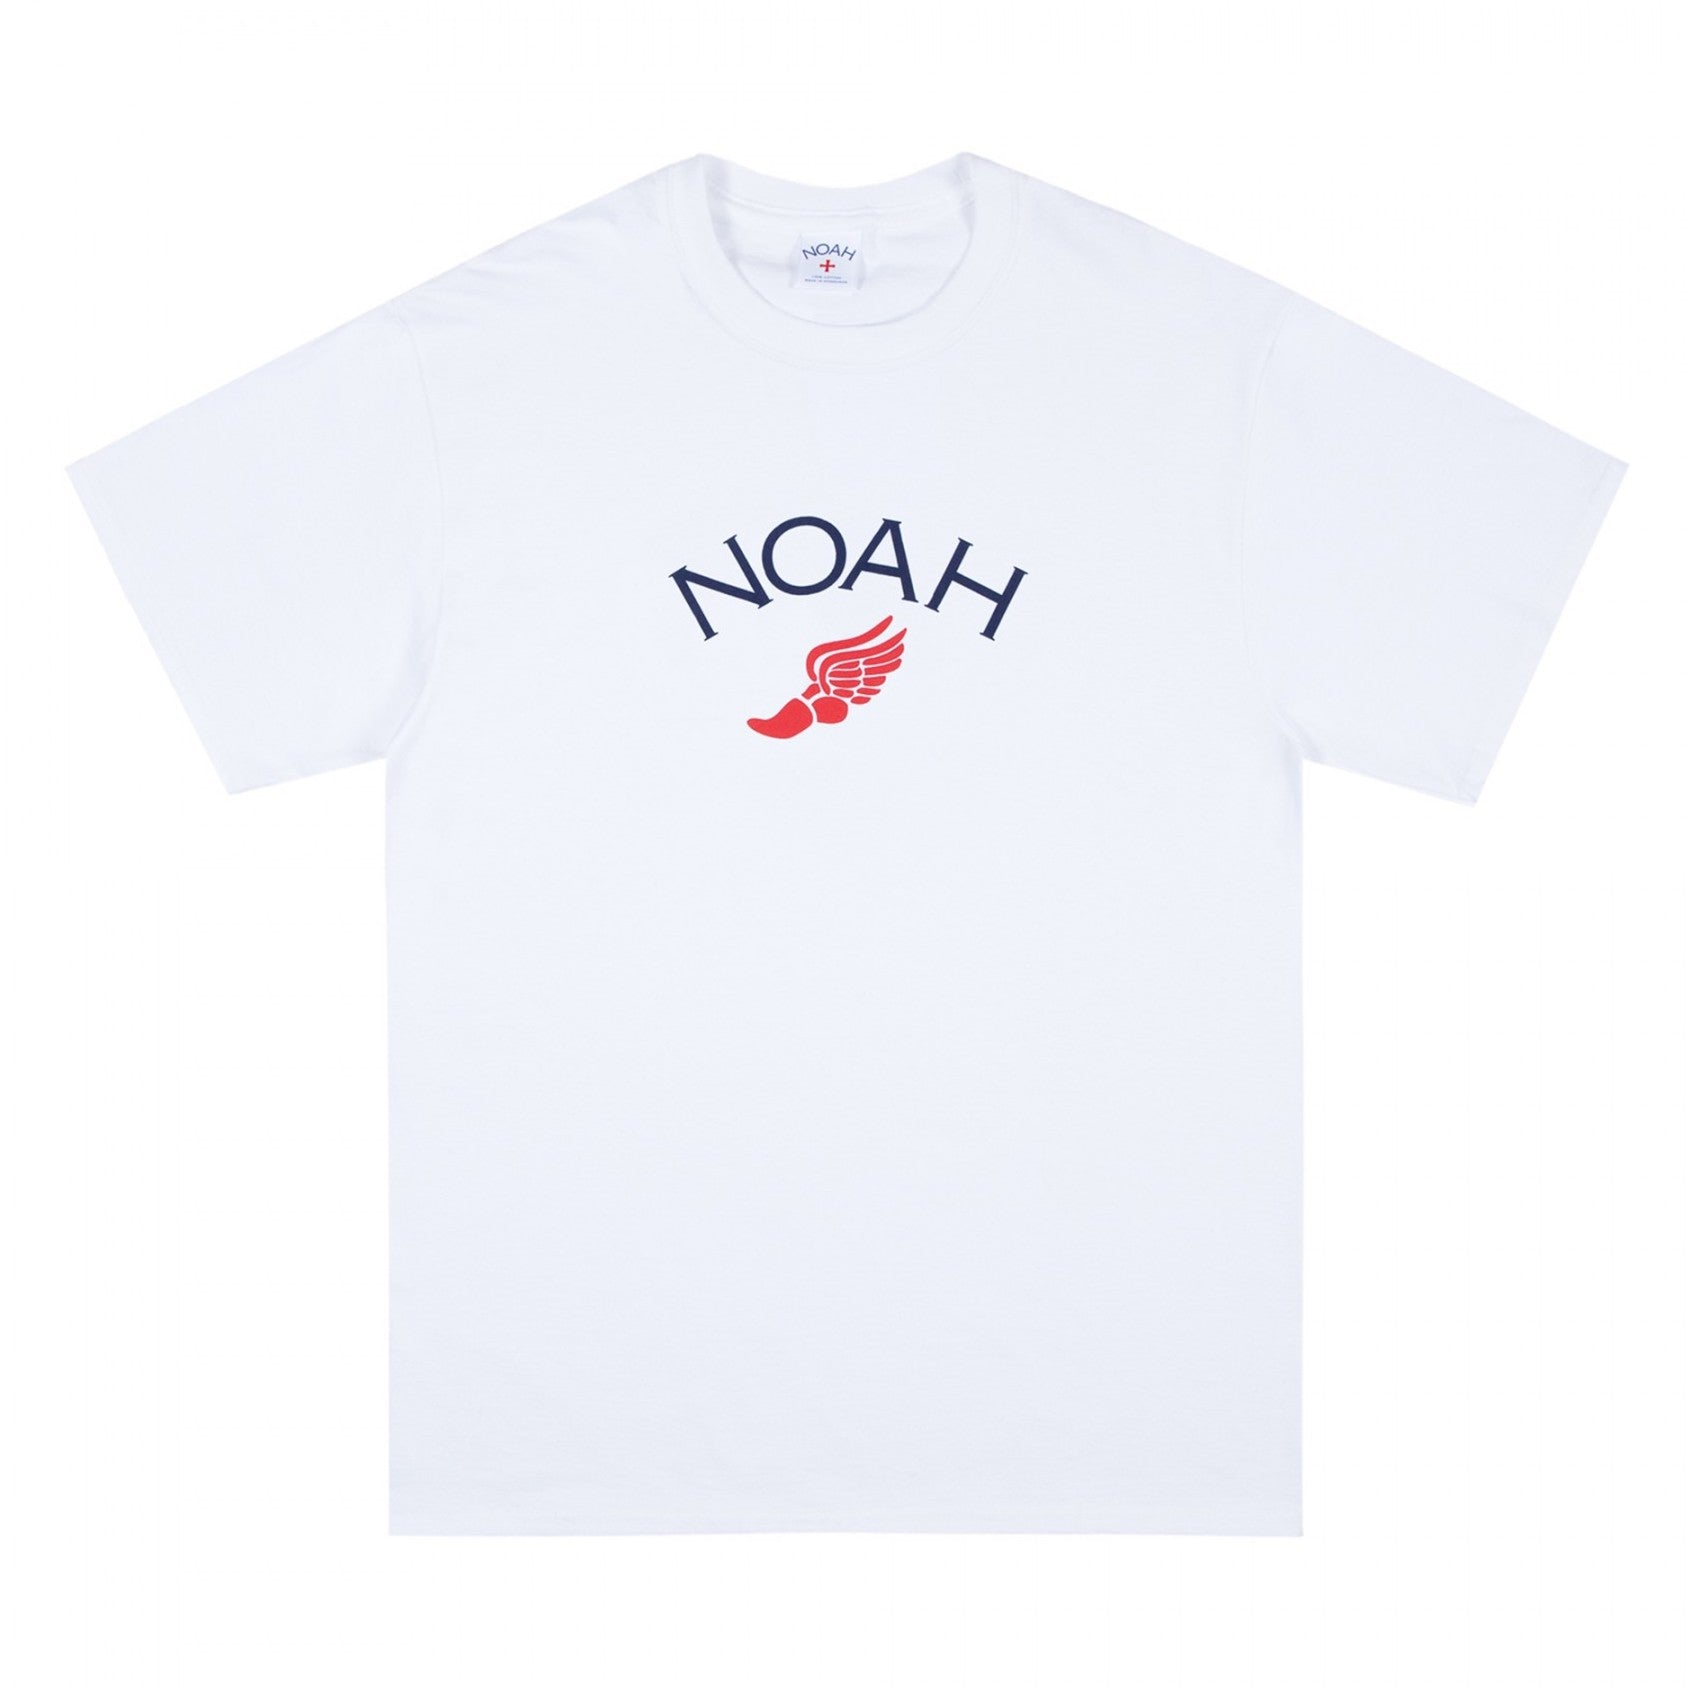 NOAH - Winged Foot Logo Tee - White